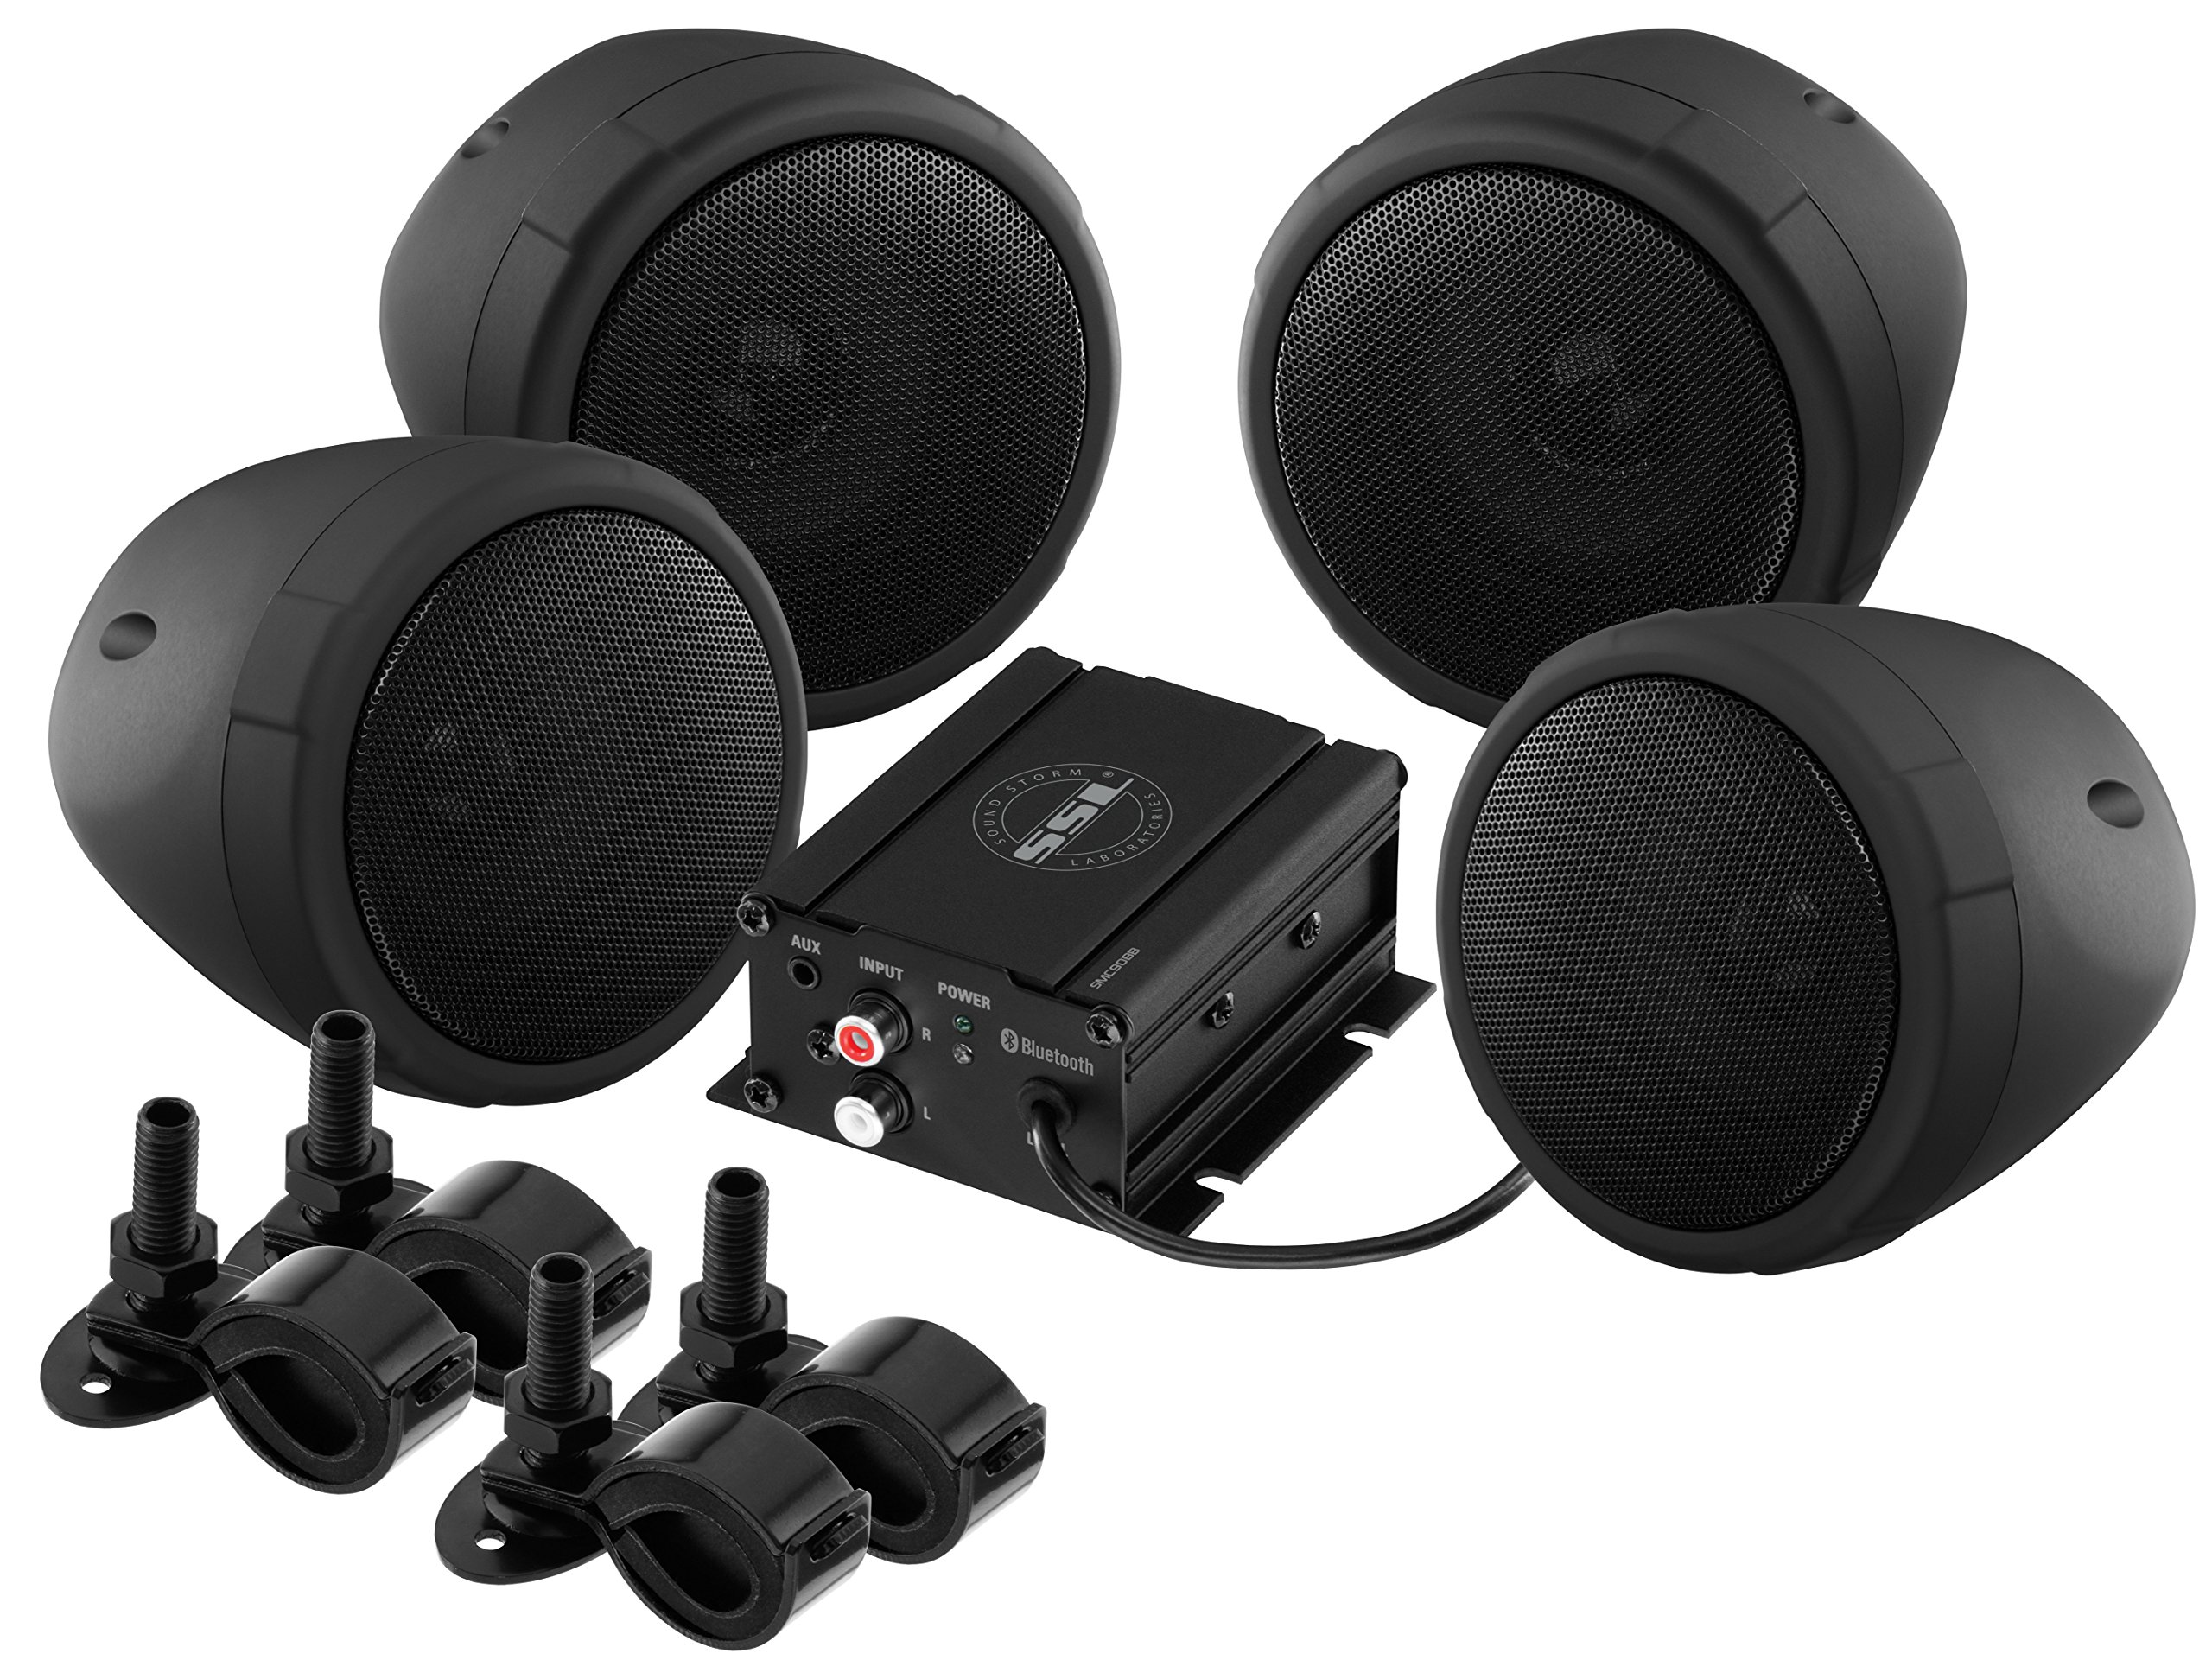 Sound Storm SMC90BB Sound System, Weatherproof, Bluetooth Amplifier, 3 Inch Speakers, Inline Volume Control, Ideal for Motorcycles/ATV and 12 Volt Applications